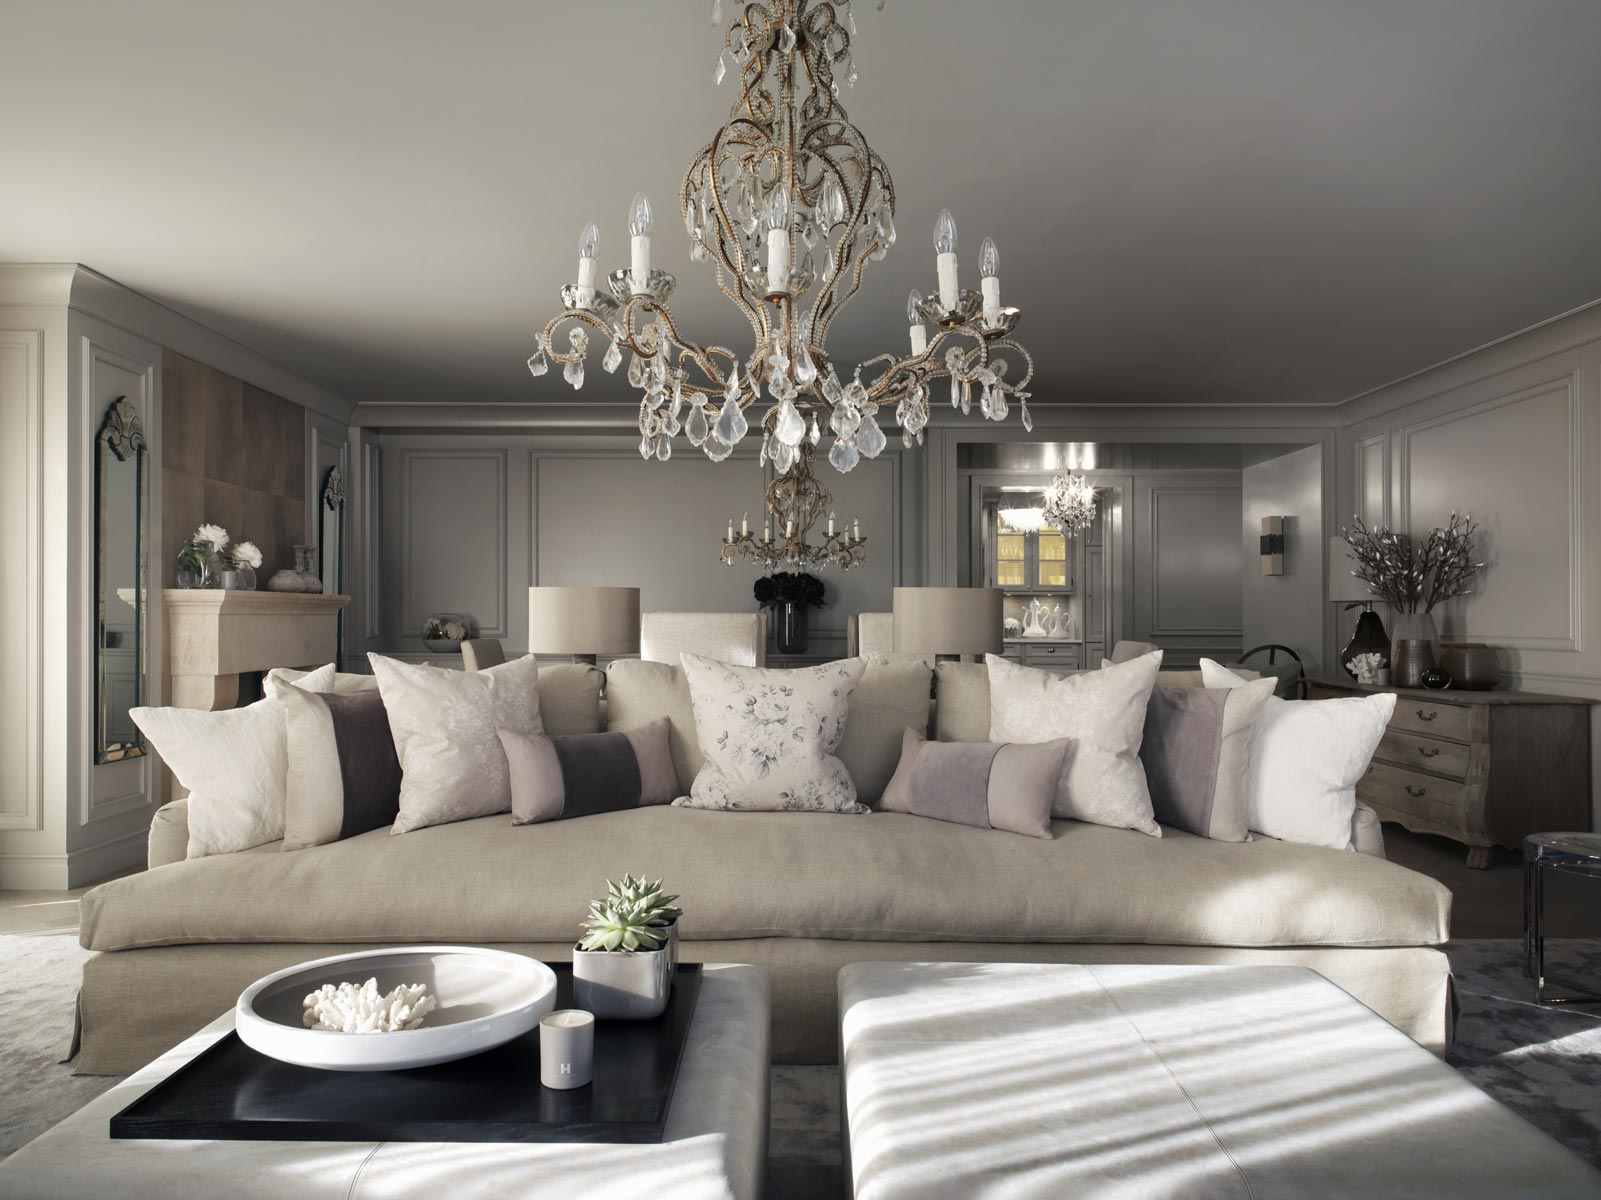 Top 10 kelly hoppen design ideas for Living room ideas uk 2018